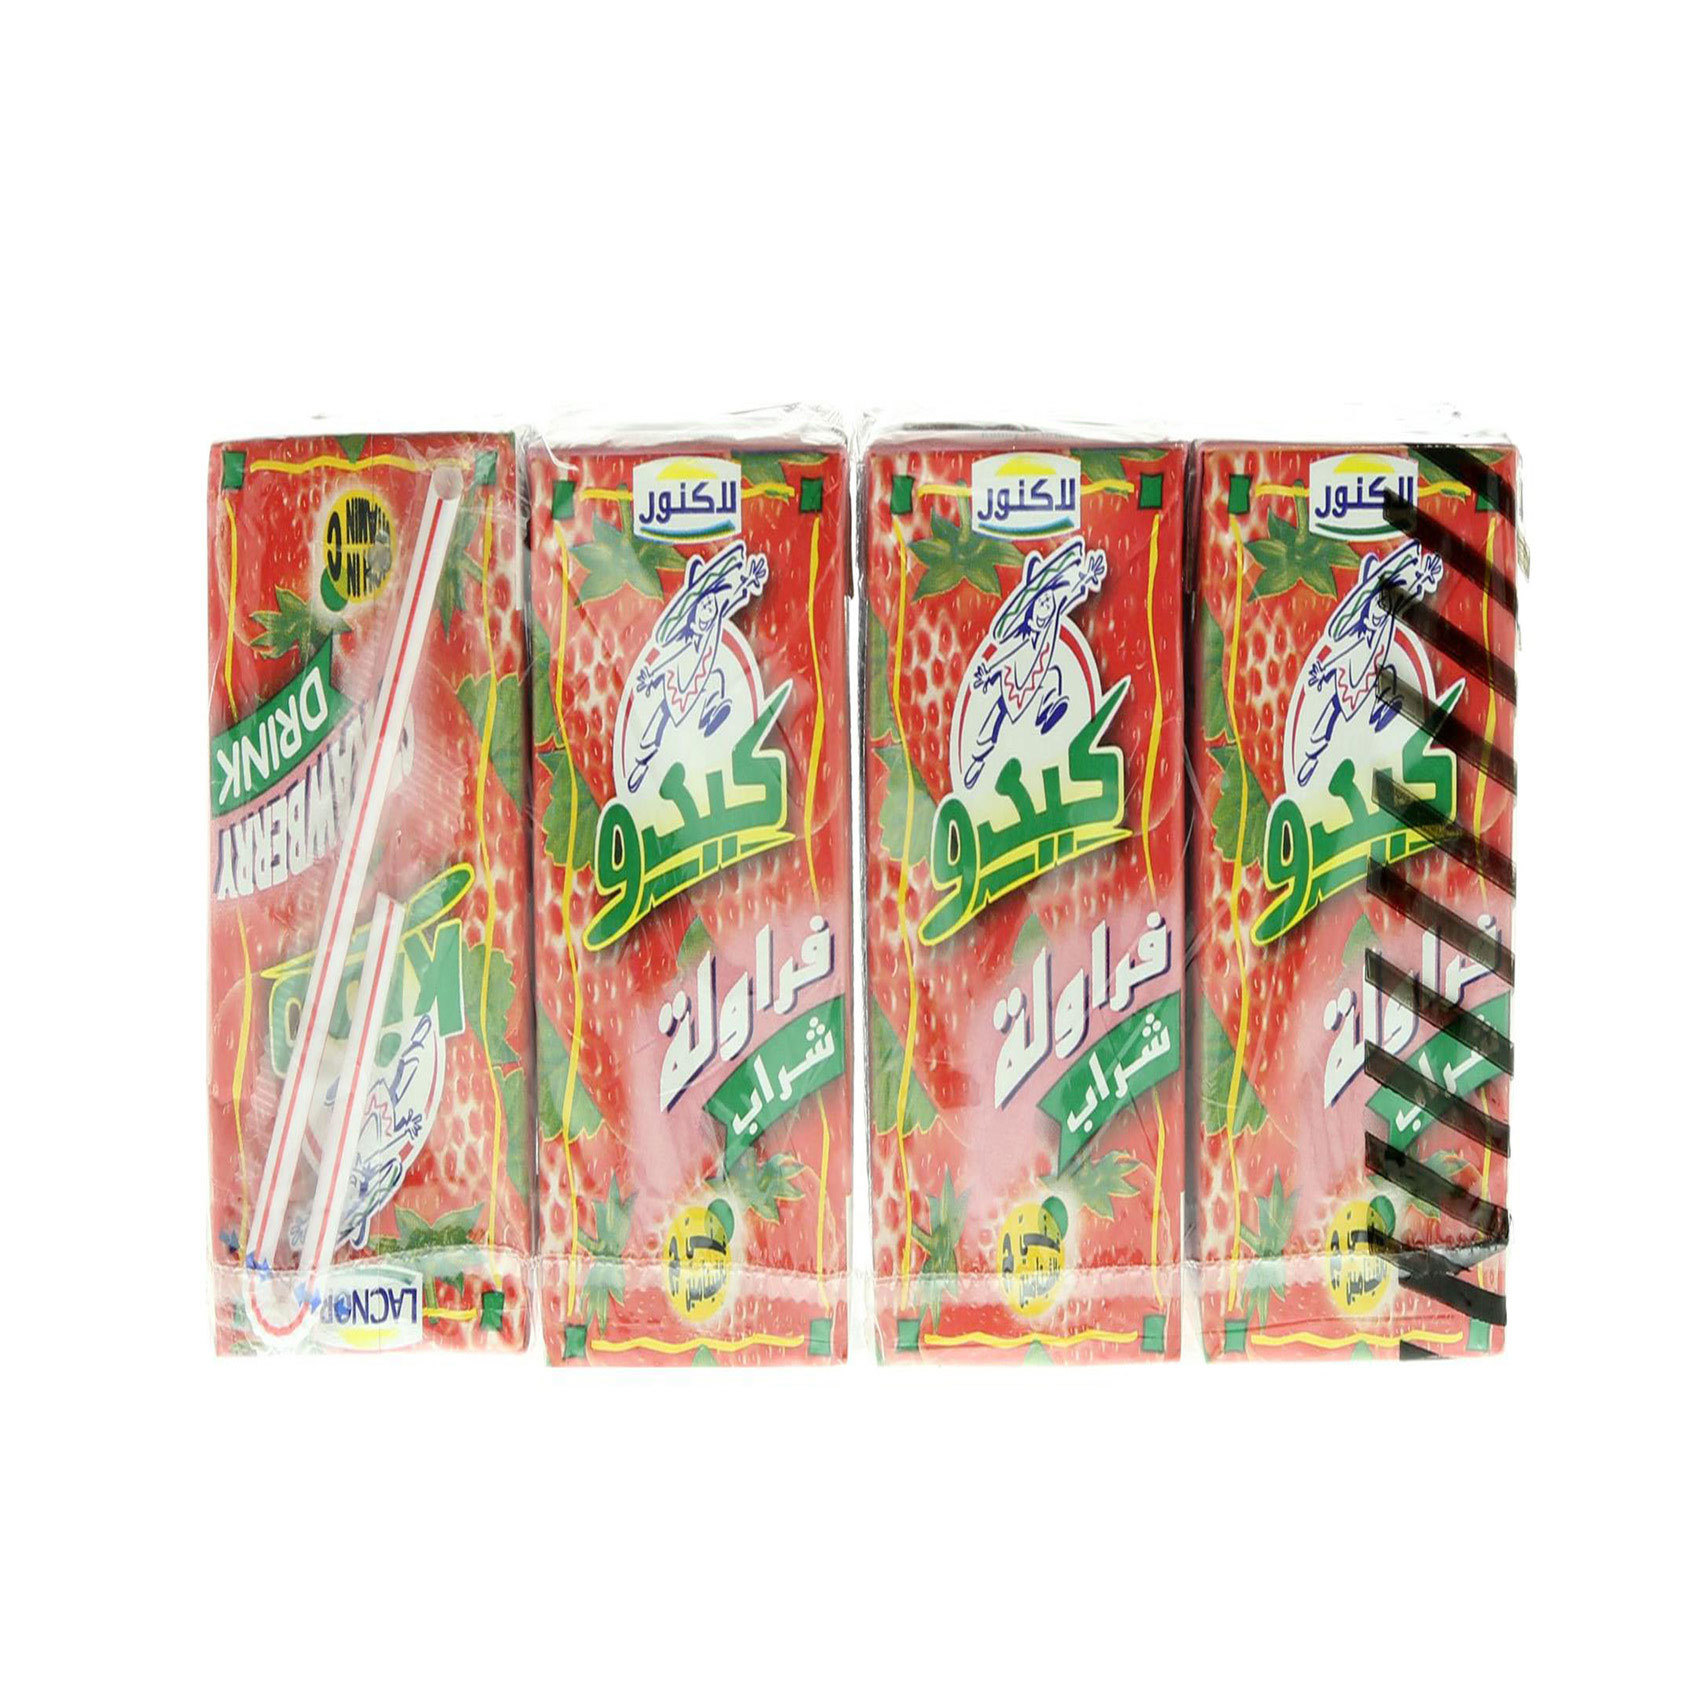 LACNOR KIDO DRINK S/BERRY 125MLX8